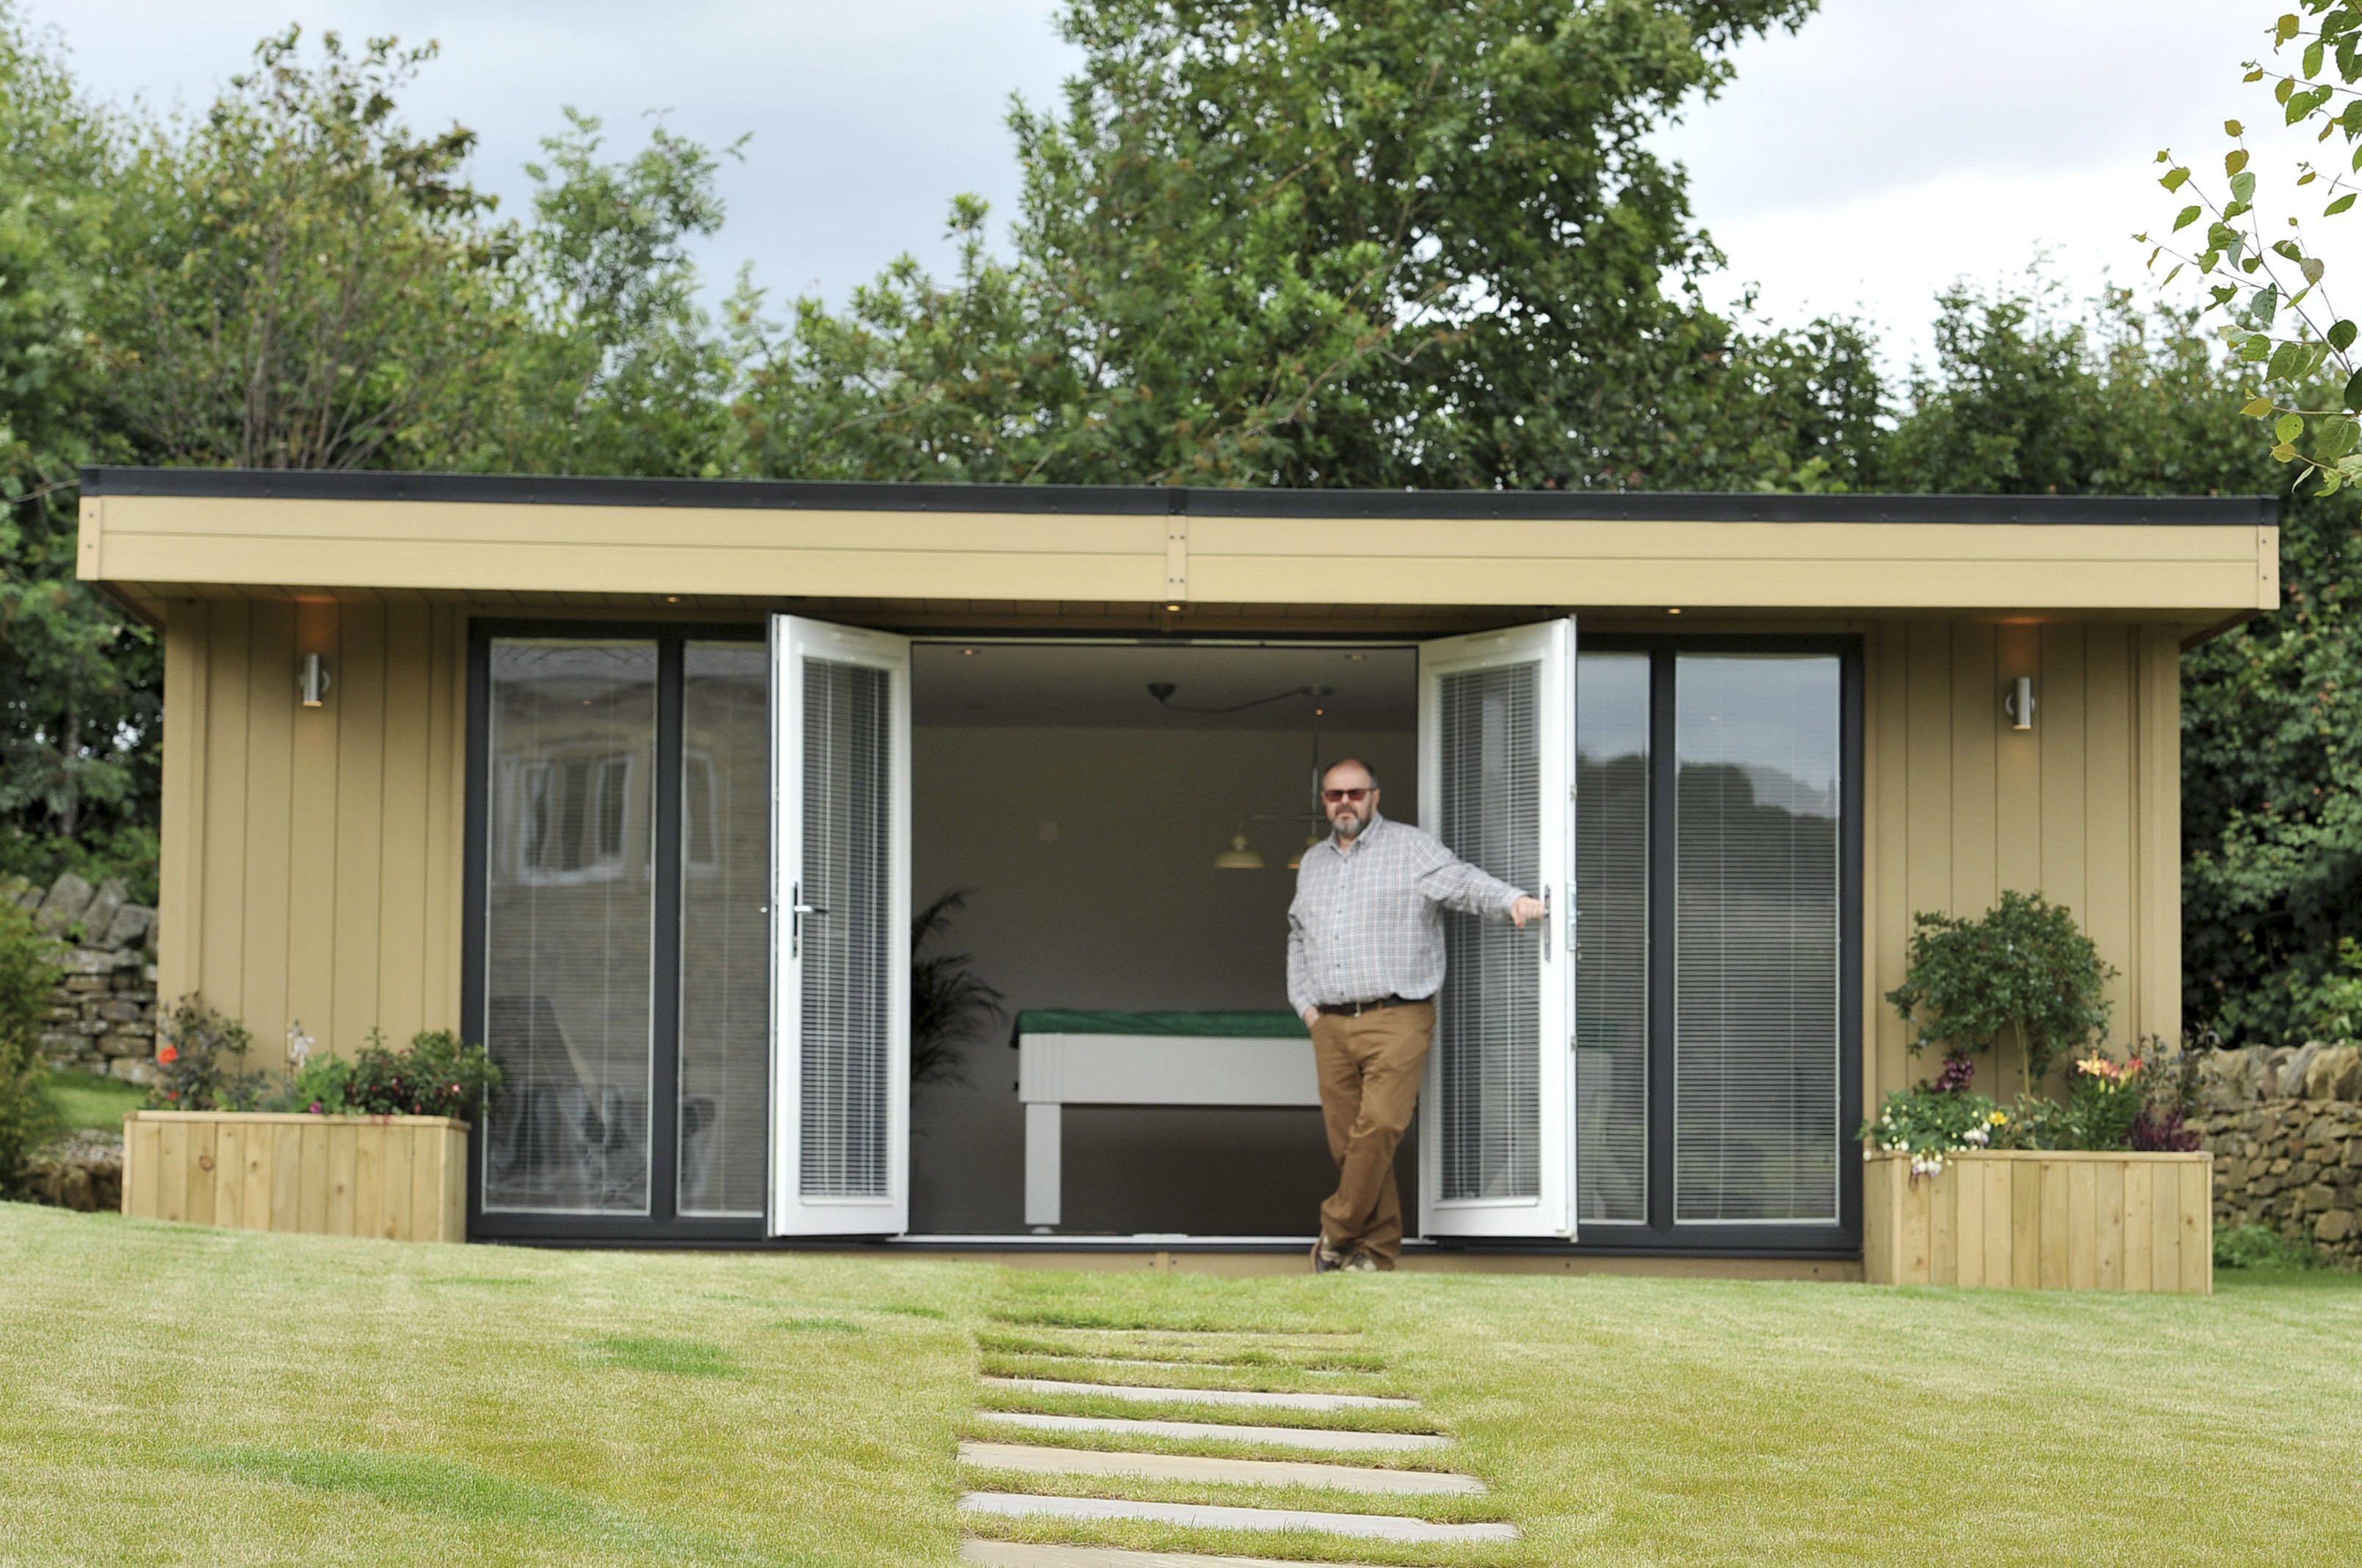 Planning and building regulations for garden rooms and offices for Garden construction